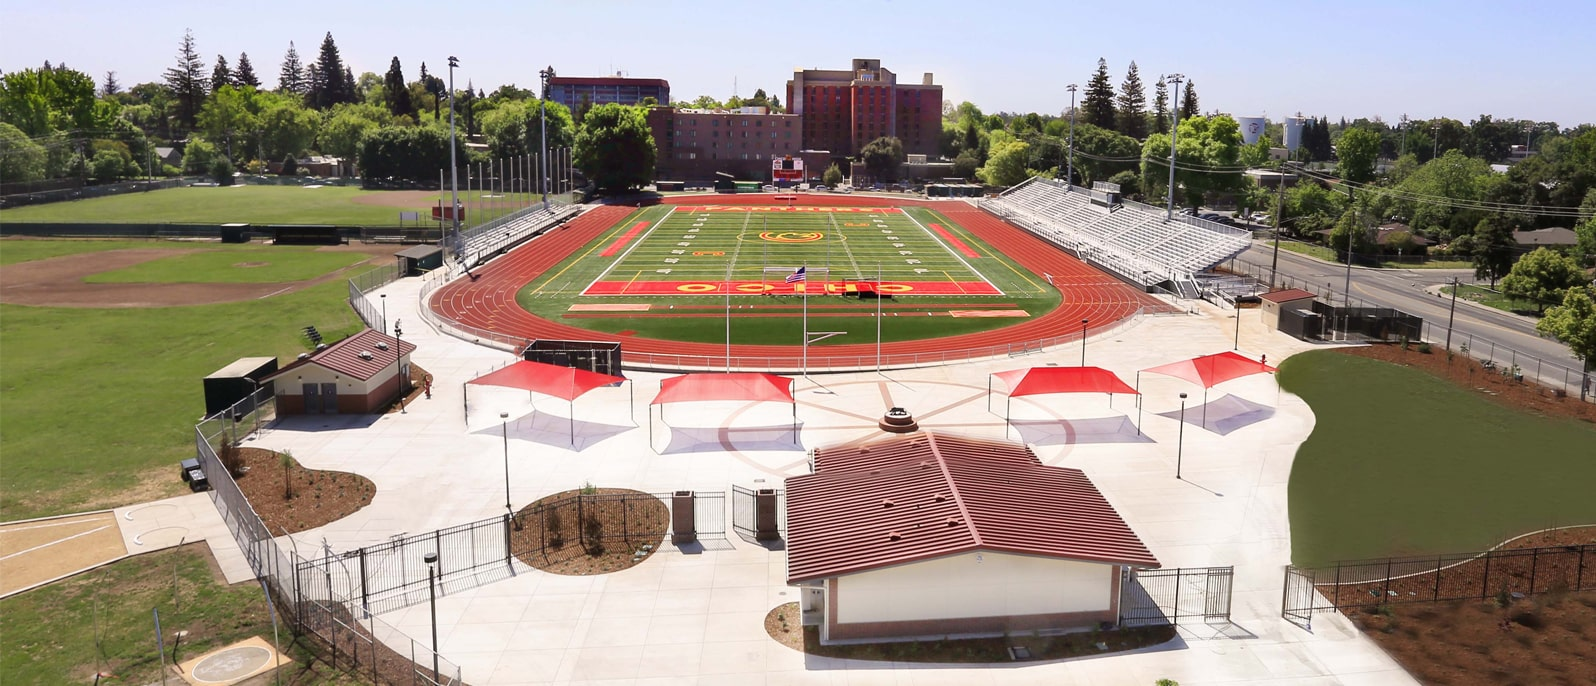 Chico High School Staidum